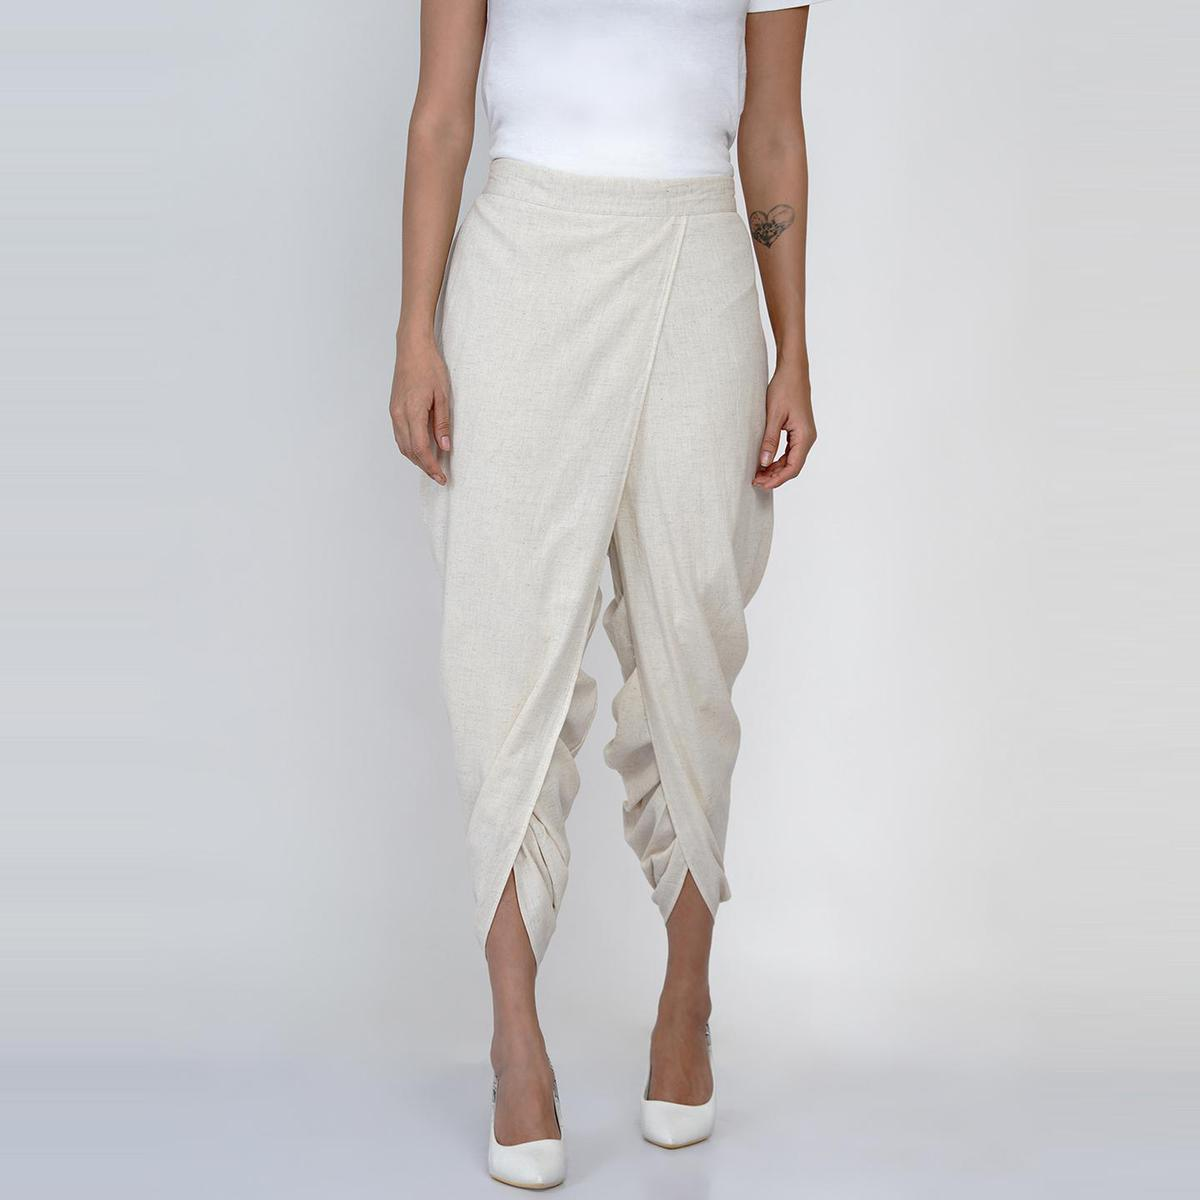 Fabnest - Womens Off White Colored Casual Cotton Dhoti Pant